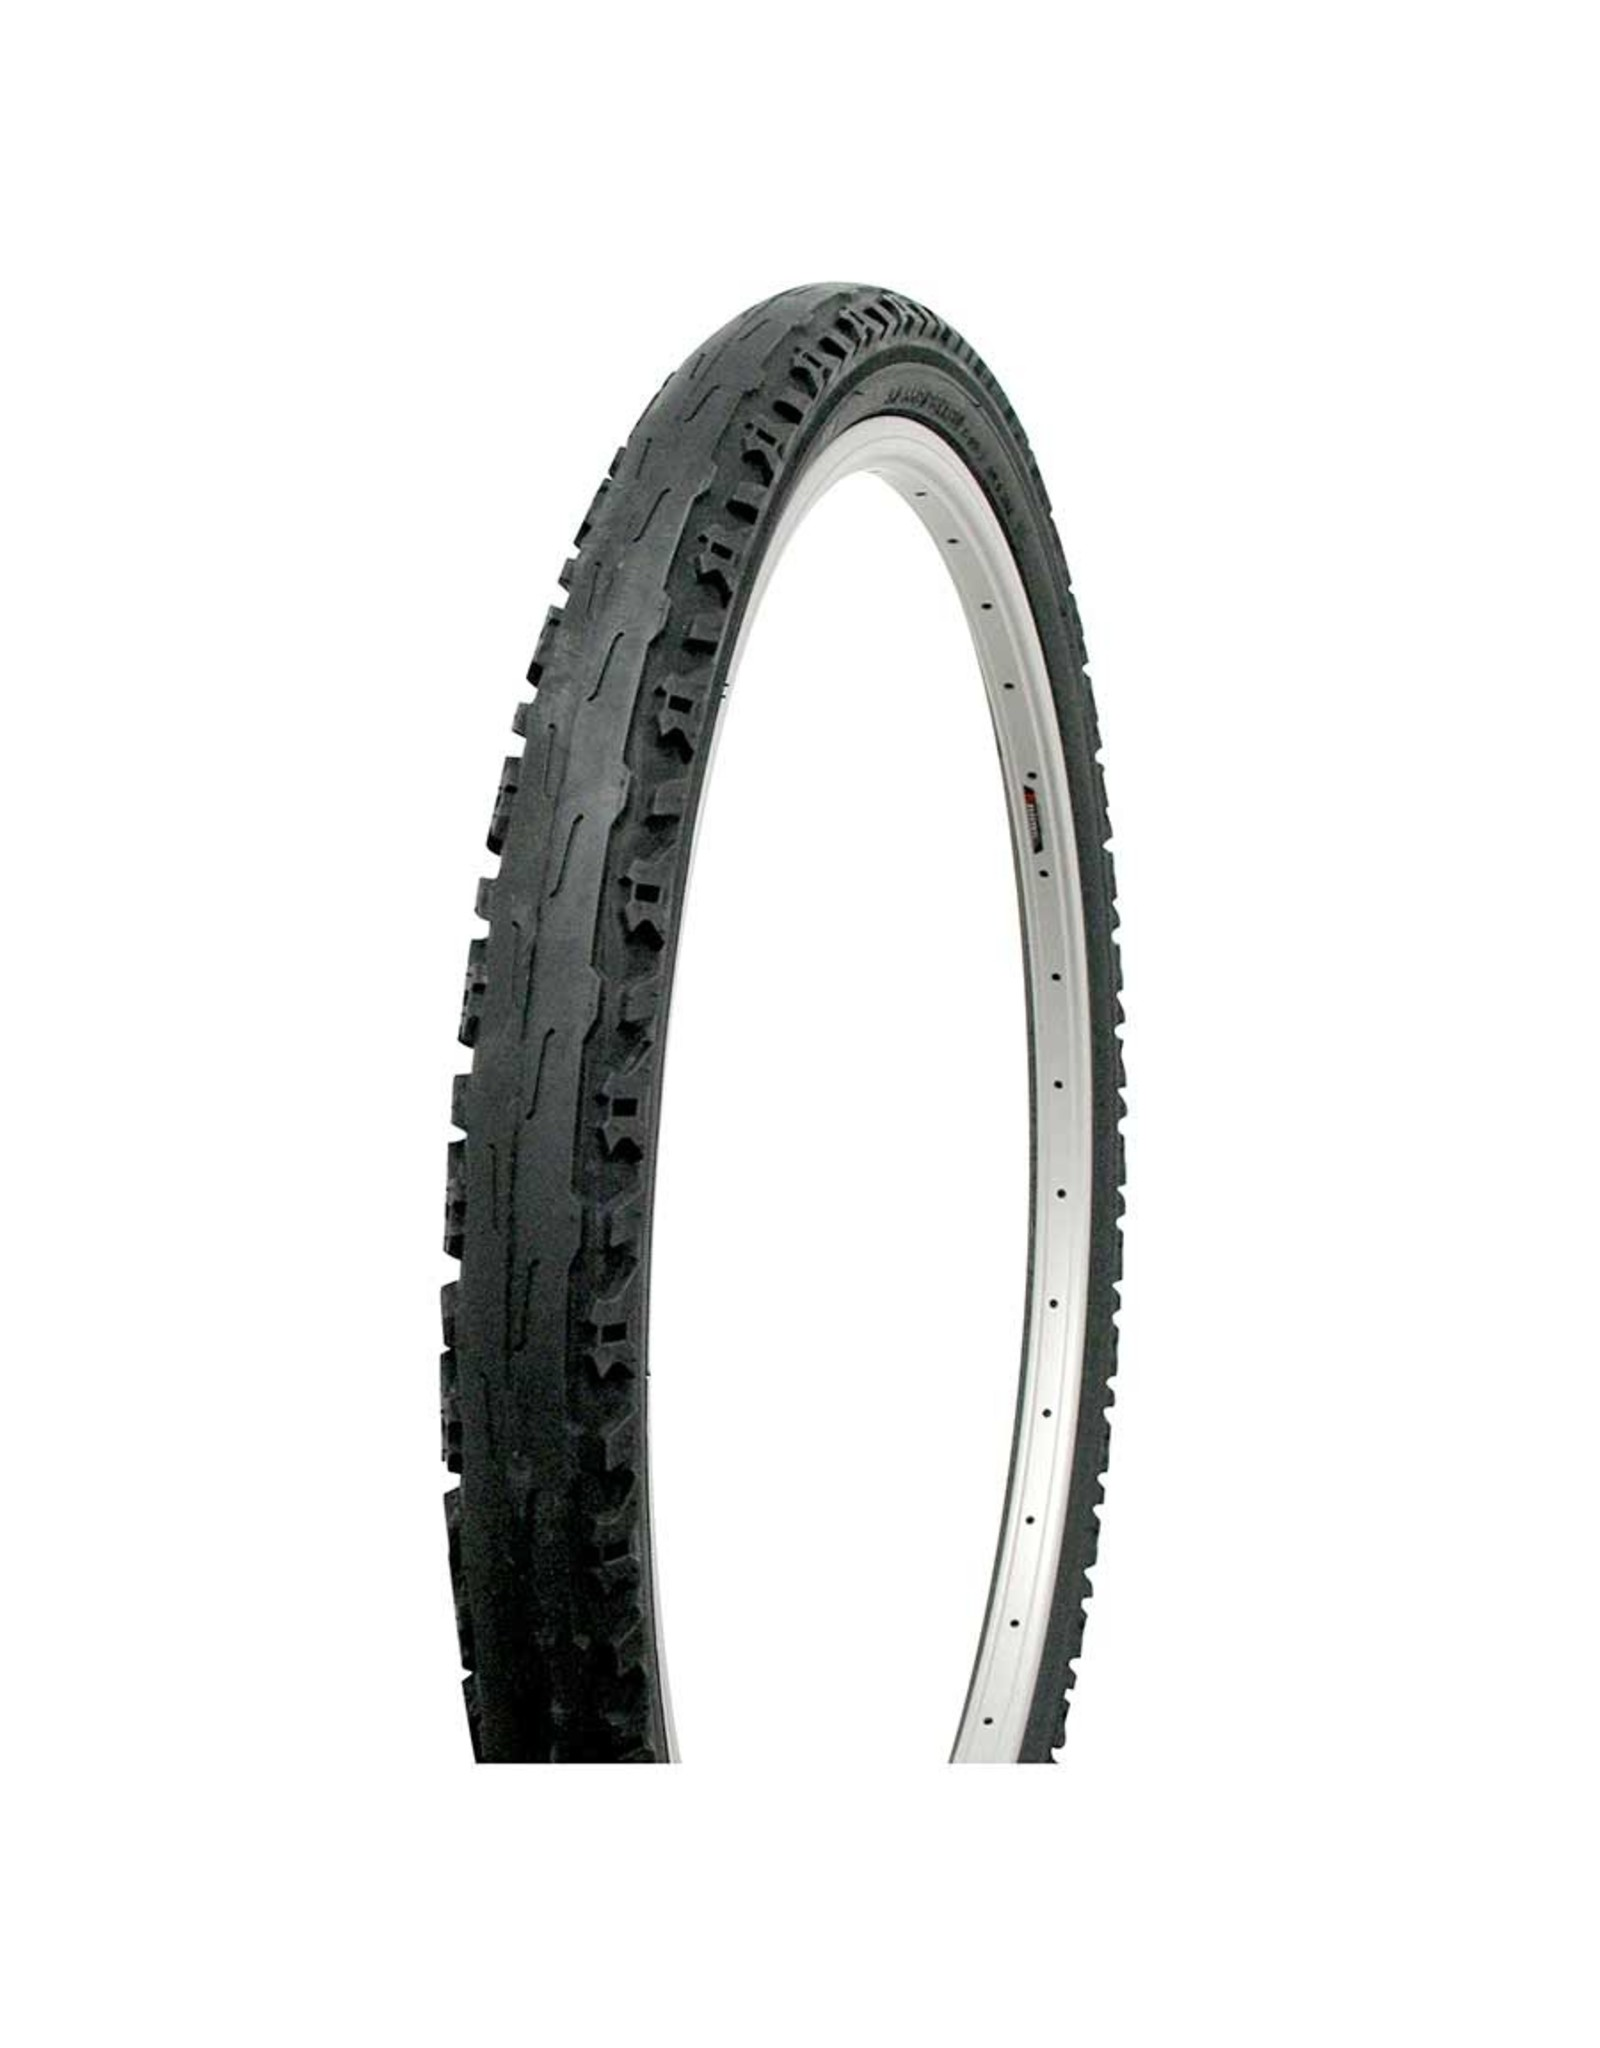 CST CST, General Style C1096, Tire, 26''x1.90, Wire, Clincher, Single, 27TPI, Black